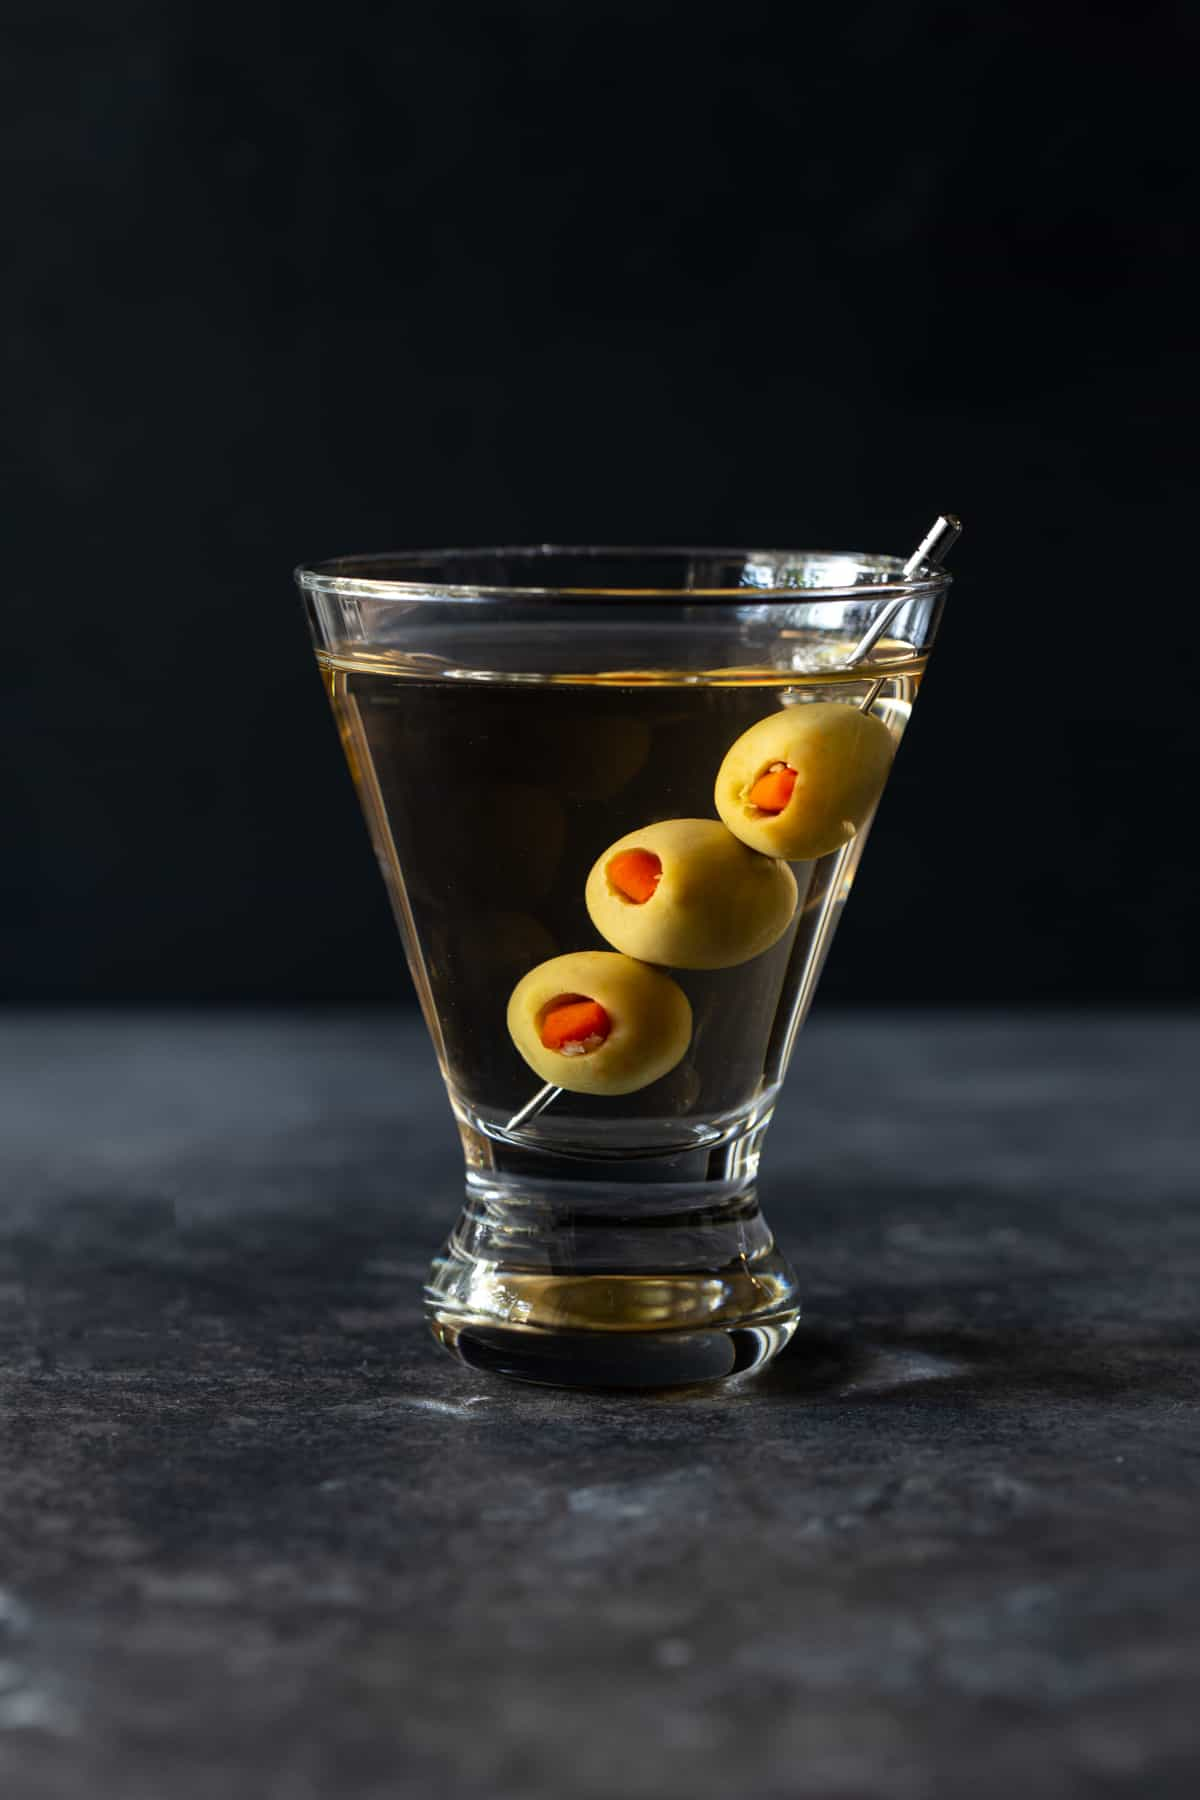 single martini glass filled with gin and olives on a skewer.